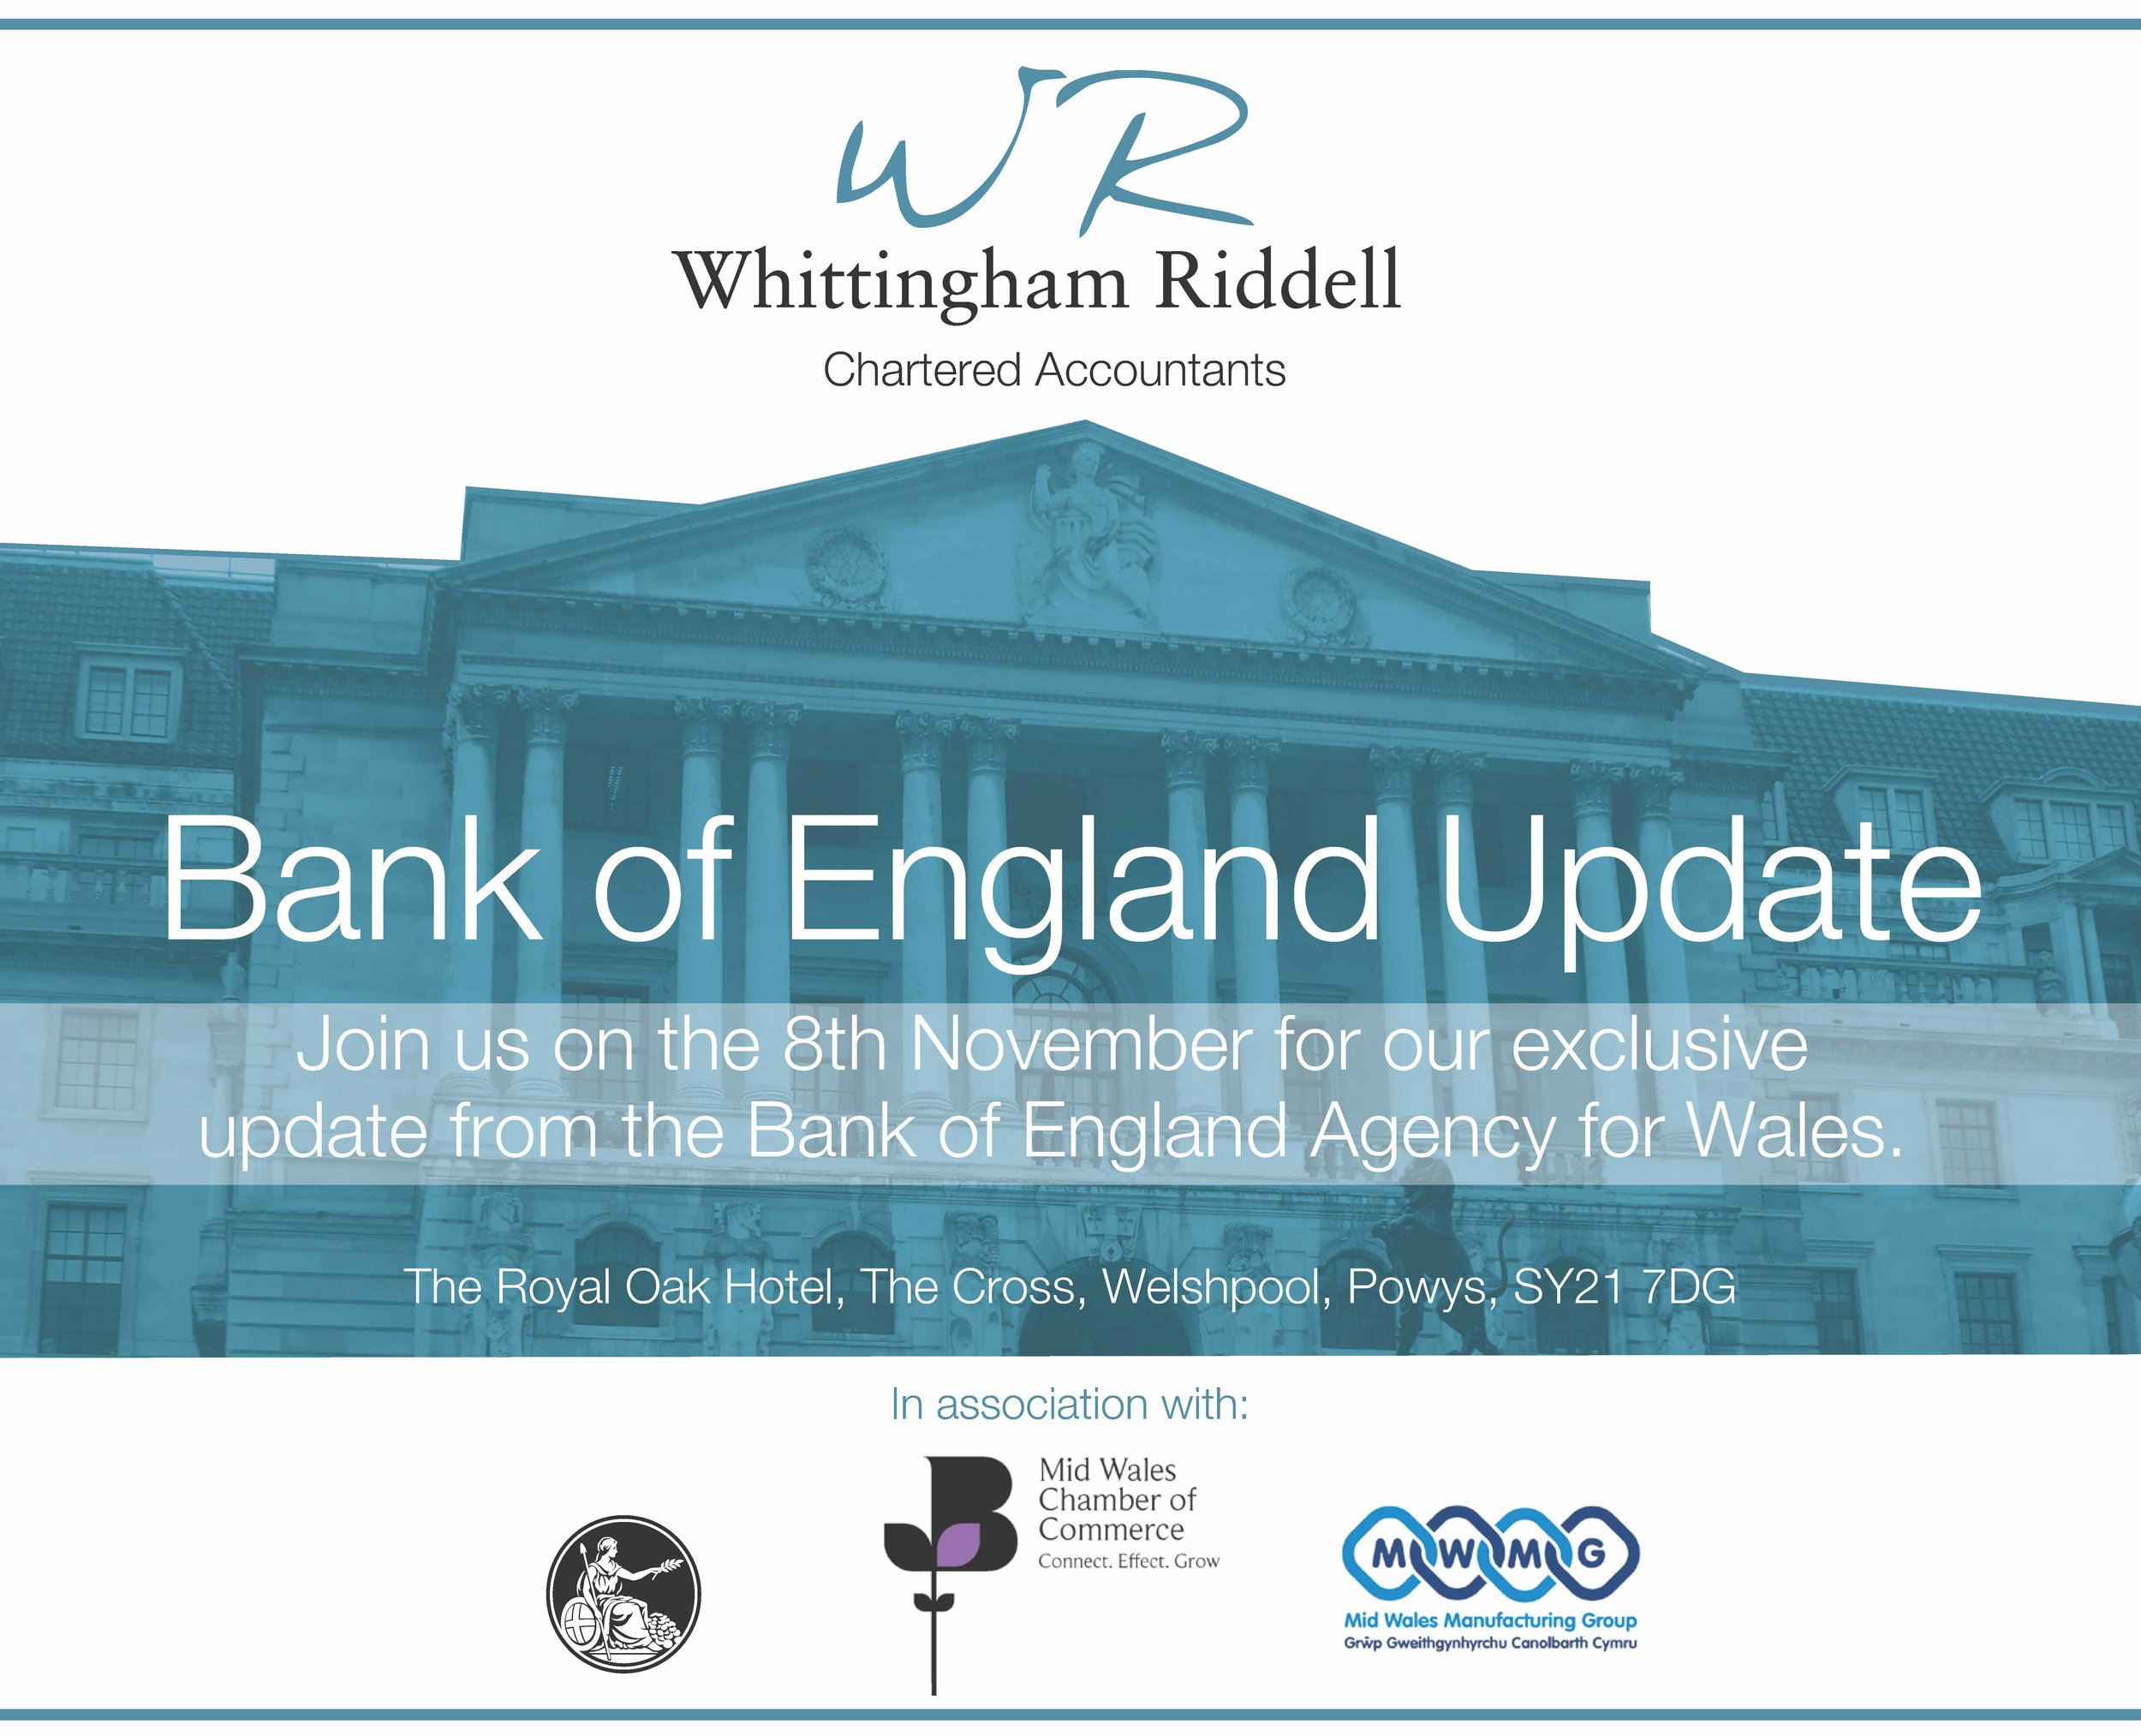 Bank of England Update Invite 08-11-18_Page_1.jpg